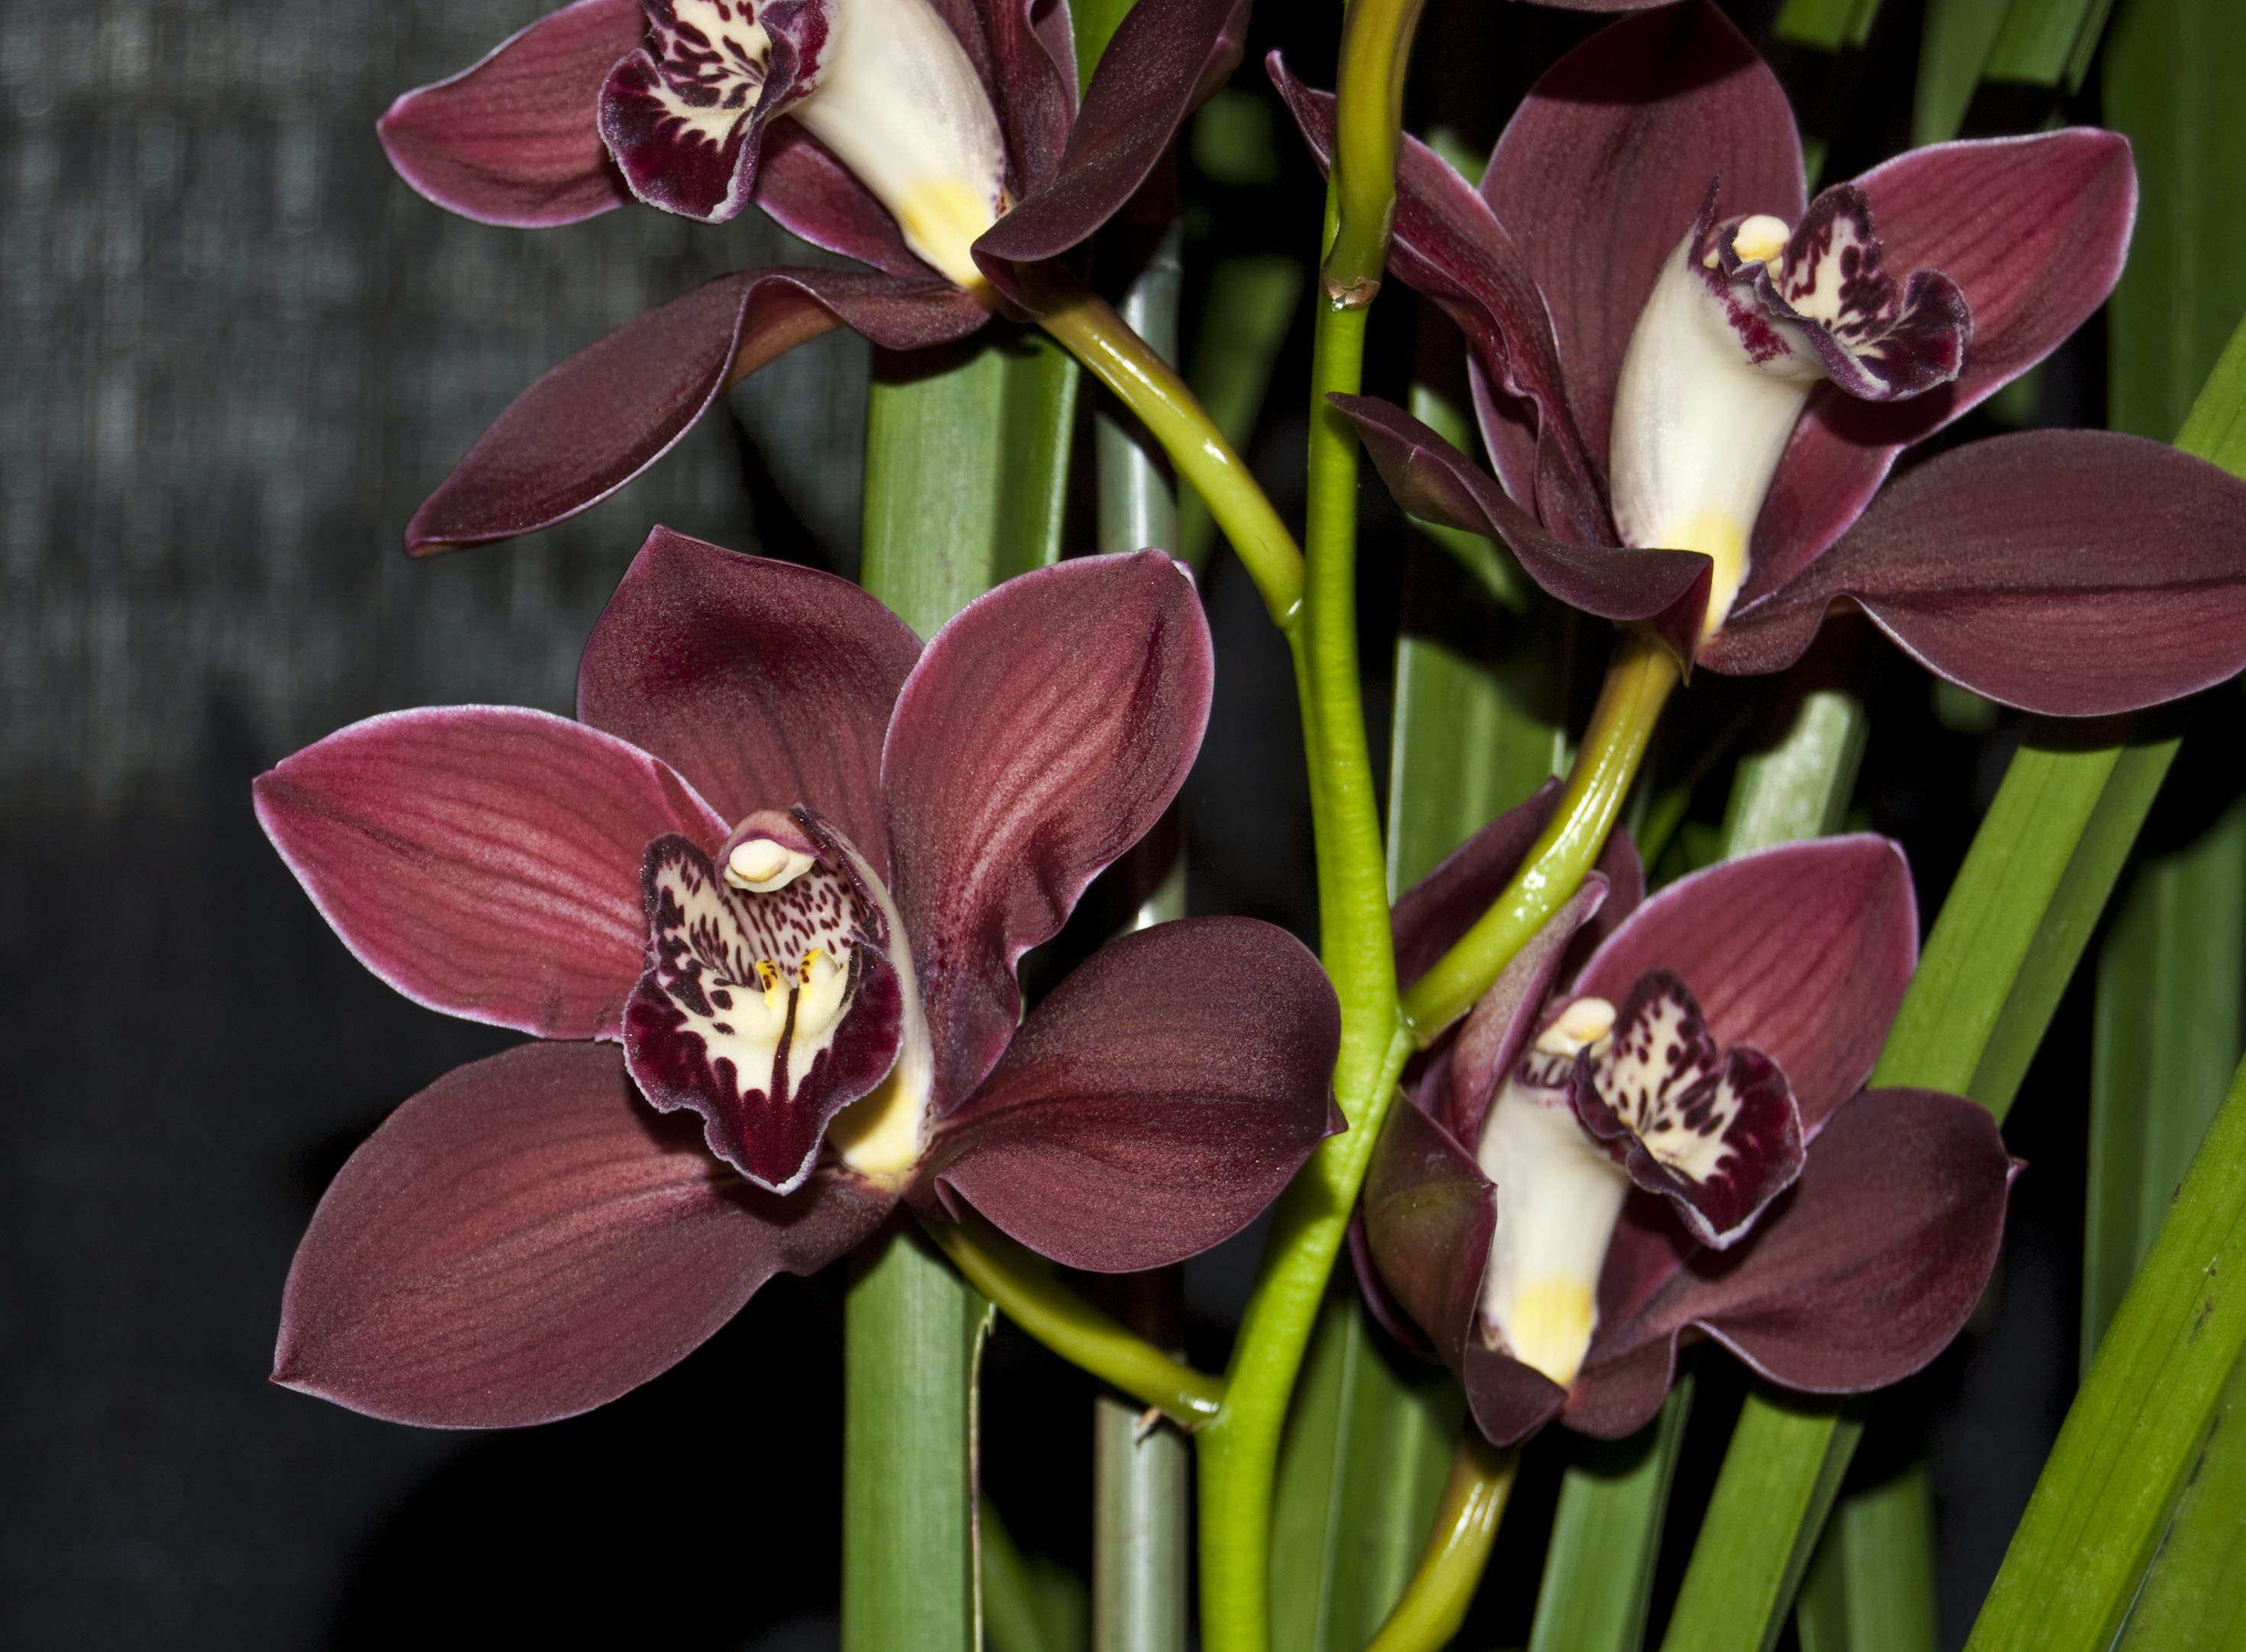 http://images1.wikia.nocookie.net/__cb20100307013437/orchids/en/images/9/98/Cymbidium_Ruby_Lips.jpg